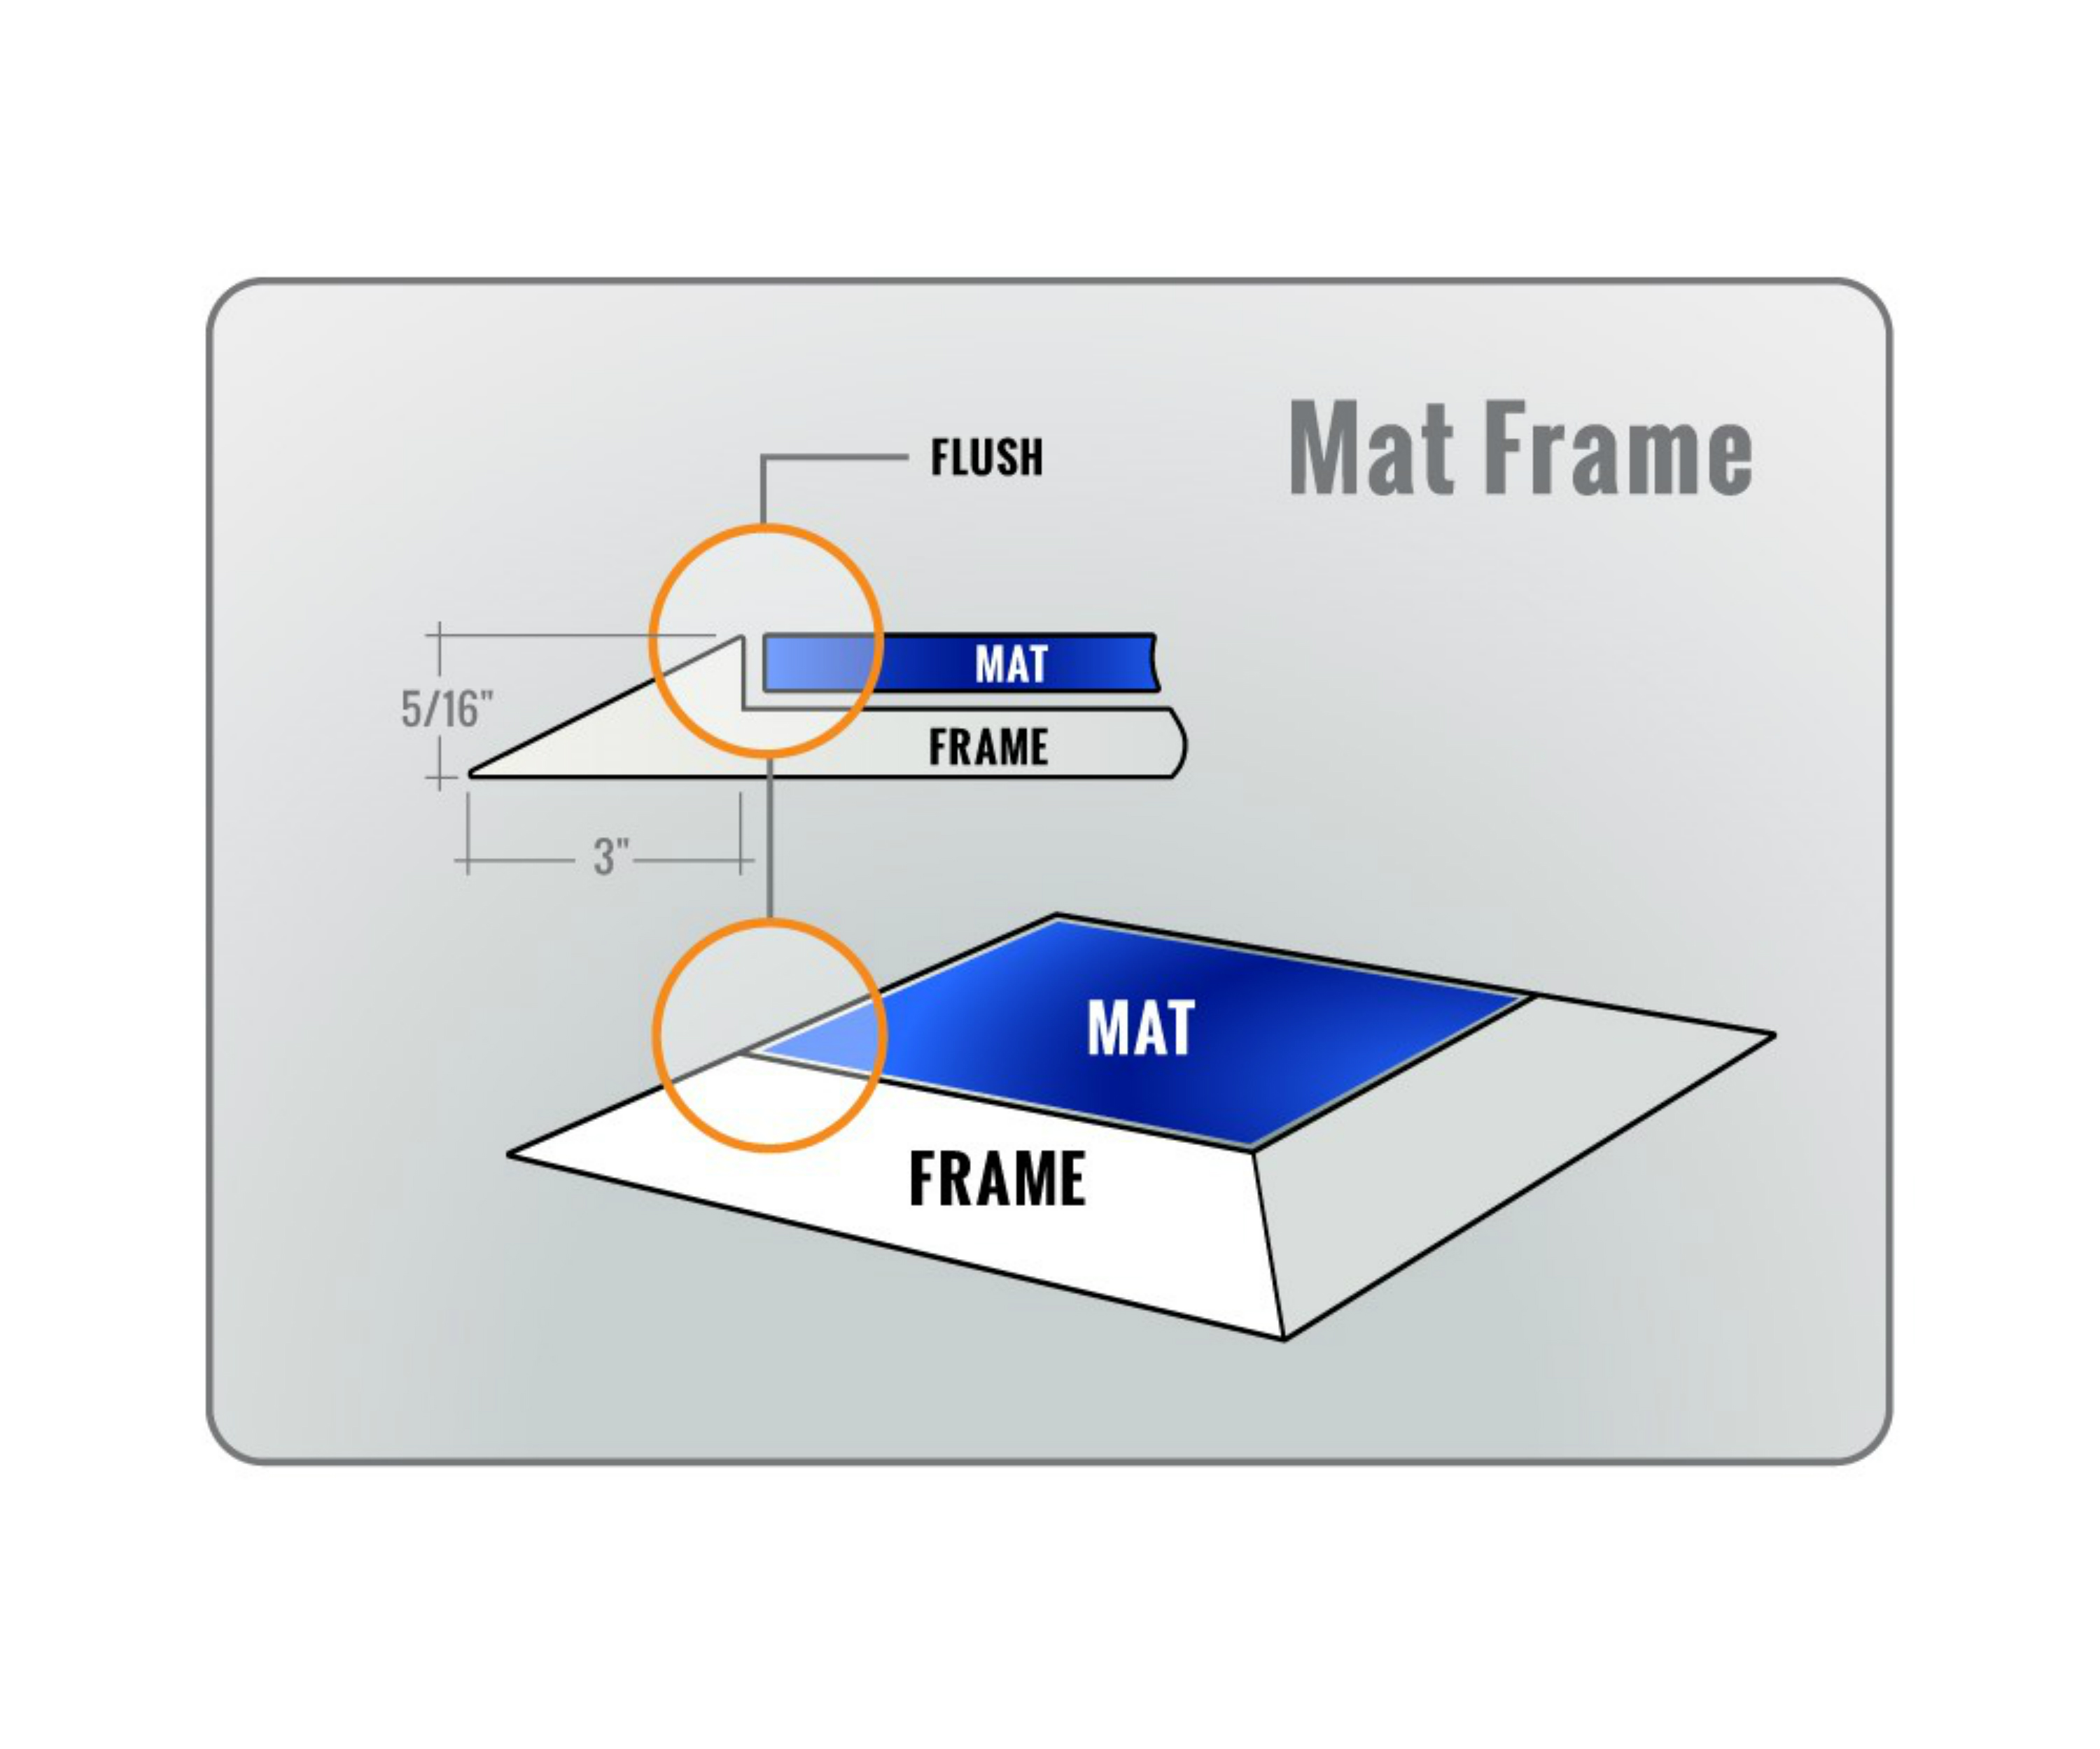 framepackage mat and care diagram of preservation for package framing frame collections guidelines matting